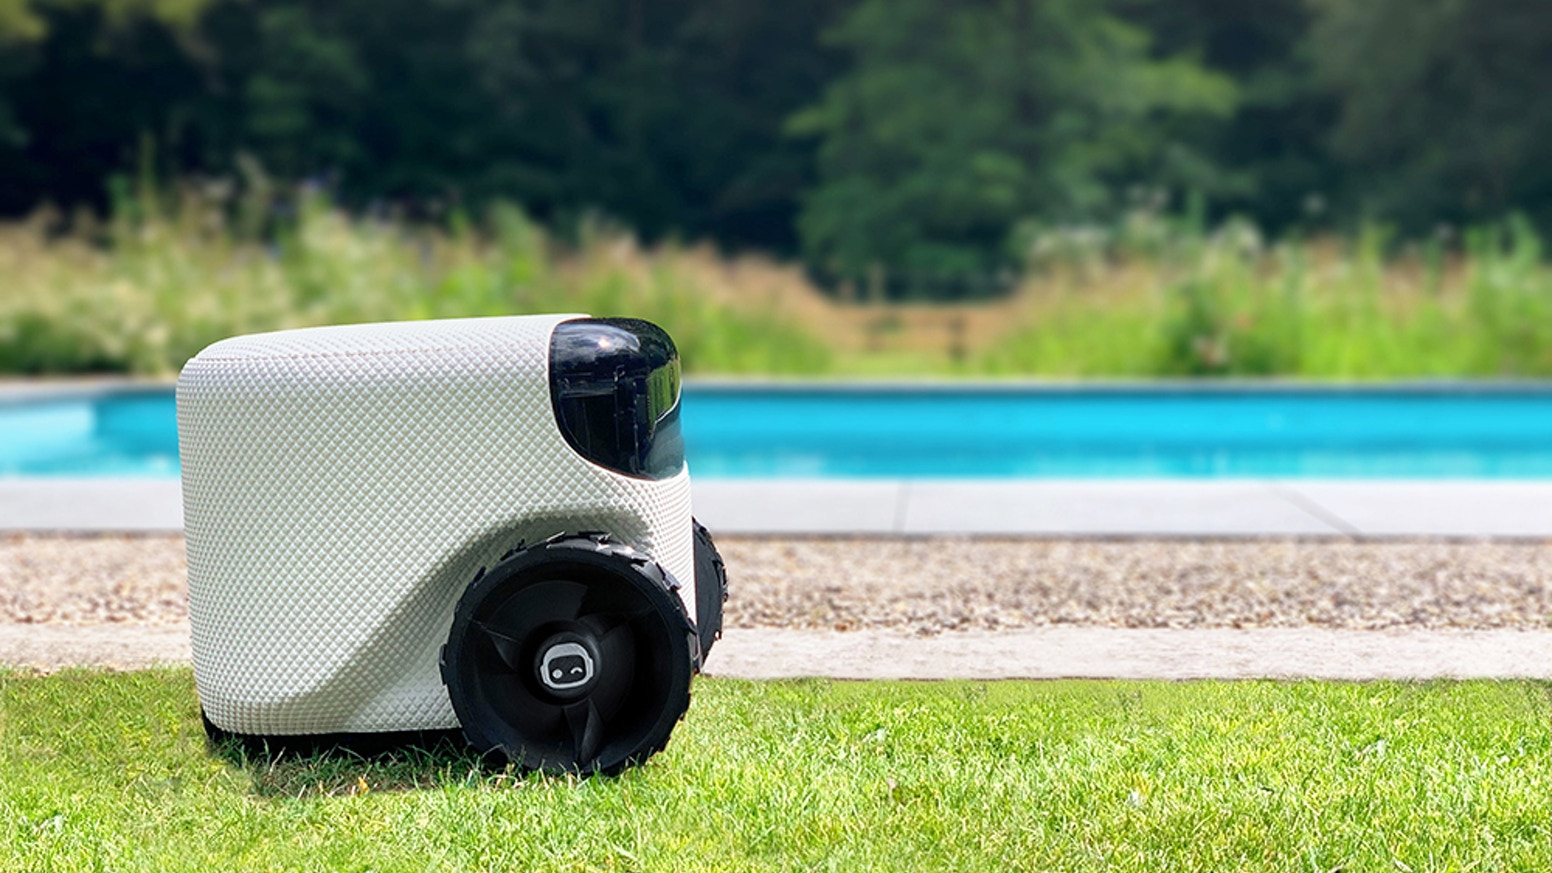 She detects and avoids objects while mowing around your yard without needing a perimeter cable! The intelligent lawn robot.